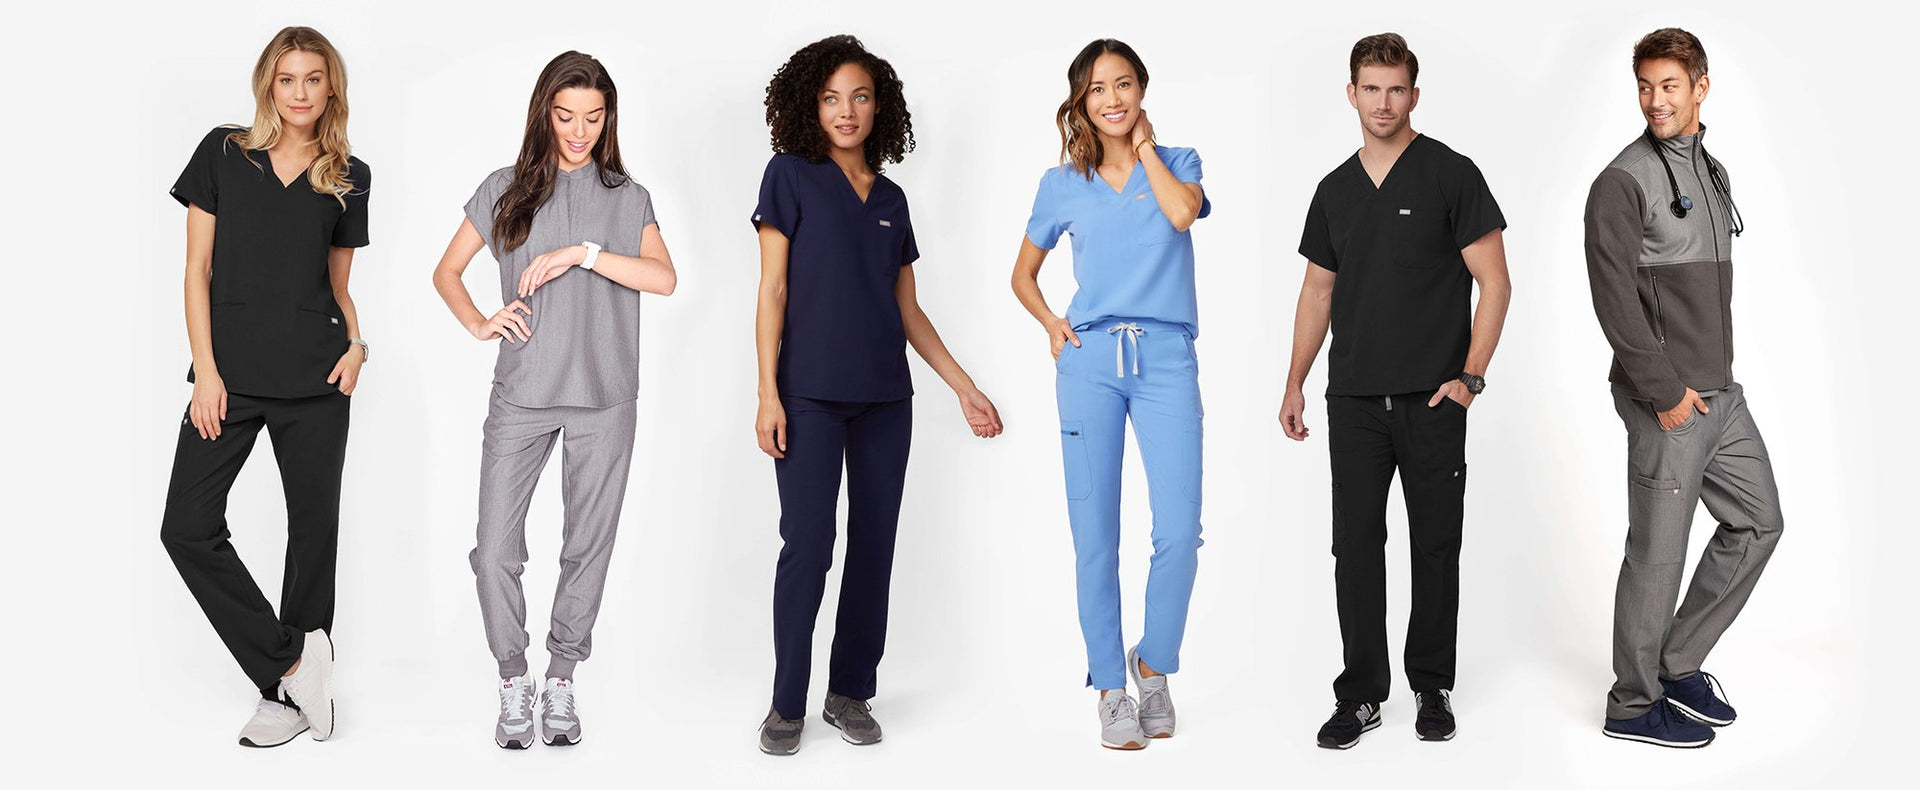 be8a565d7e3 Why wear scrubs when you can wear FIGS?